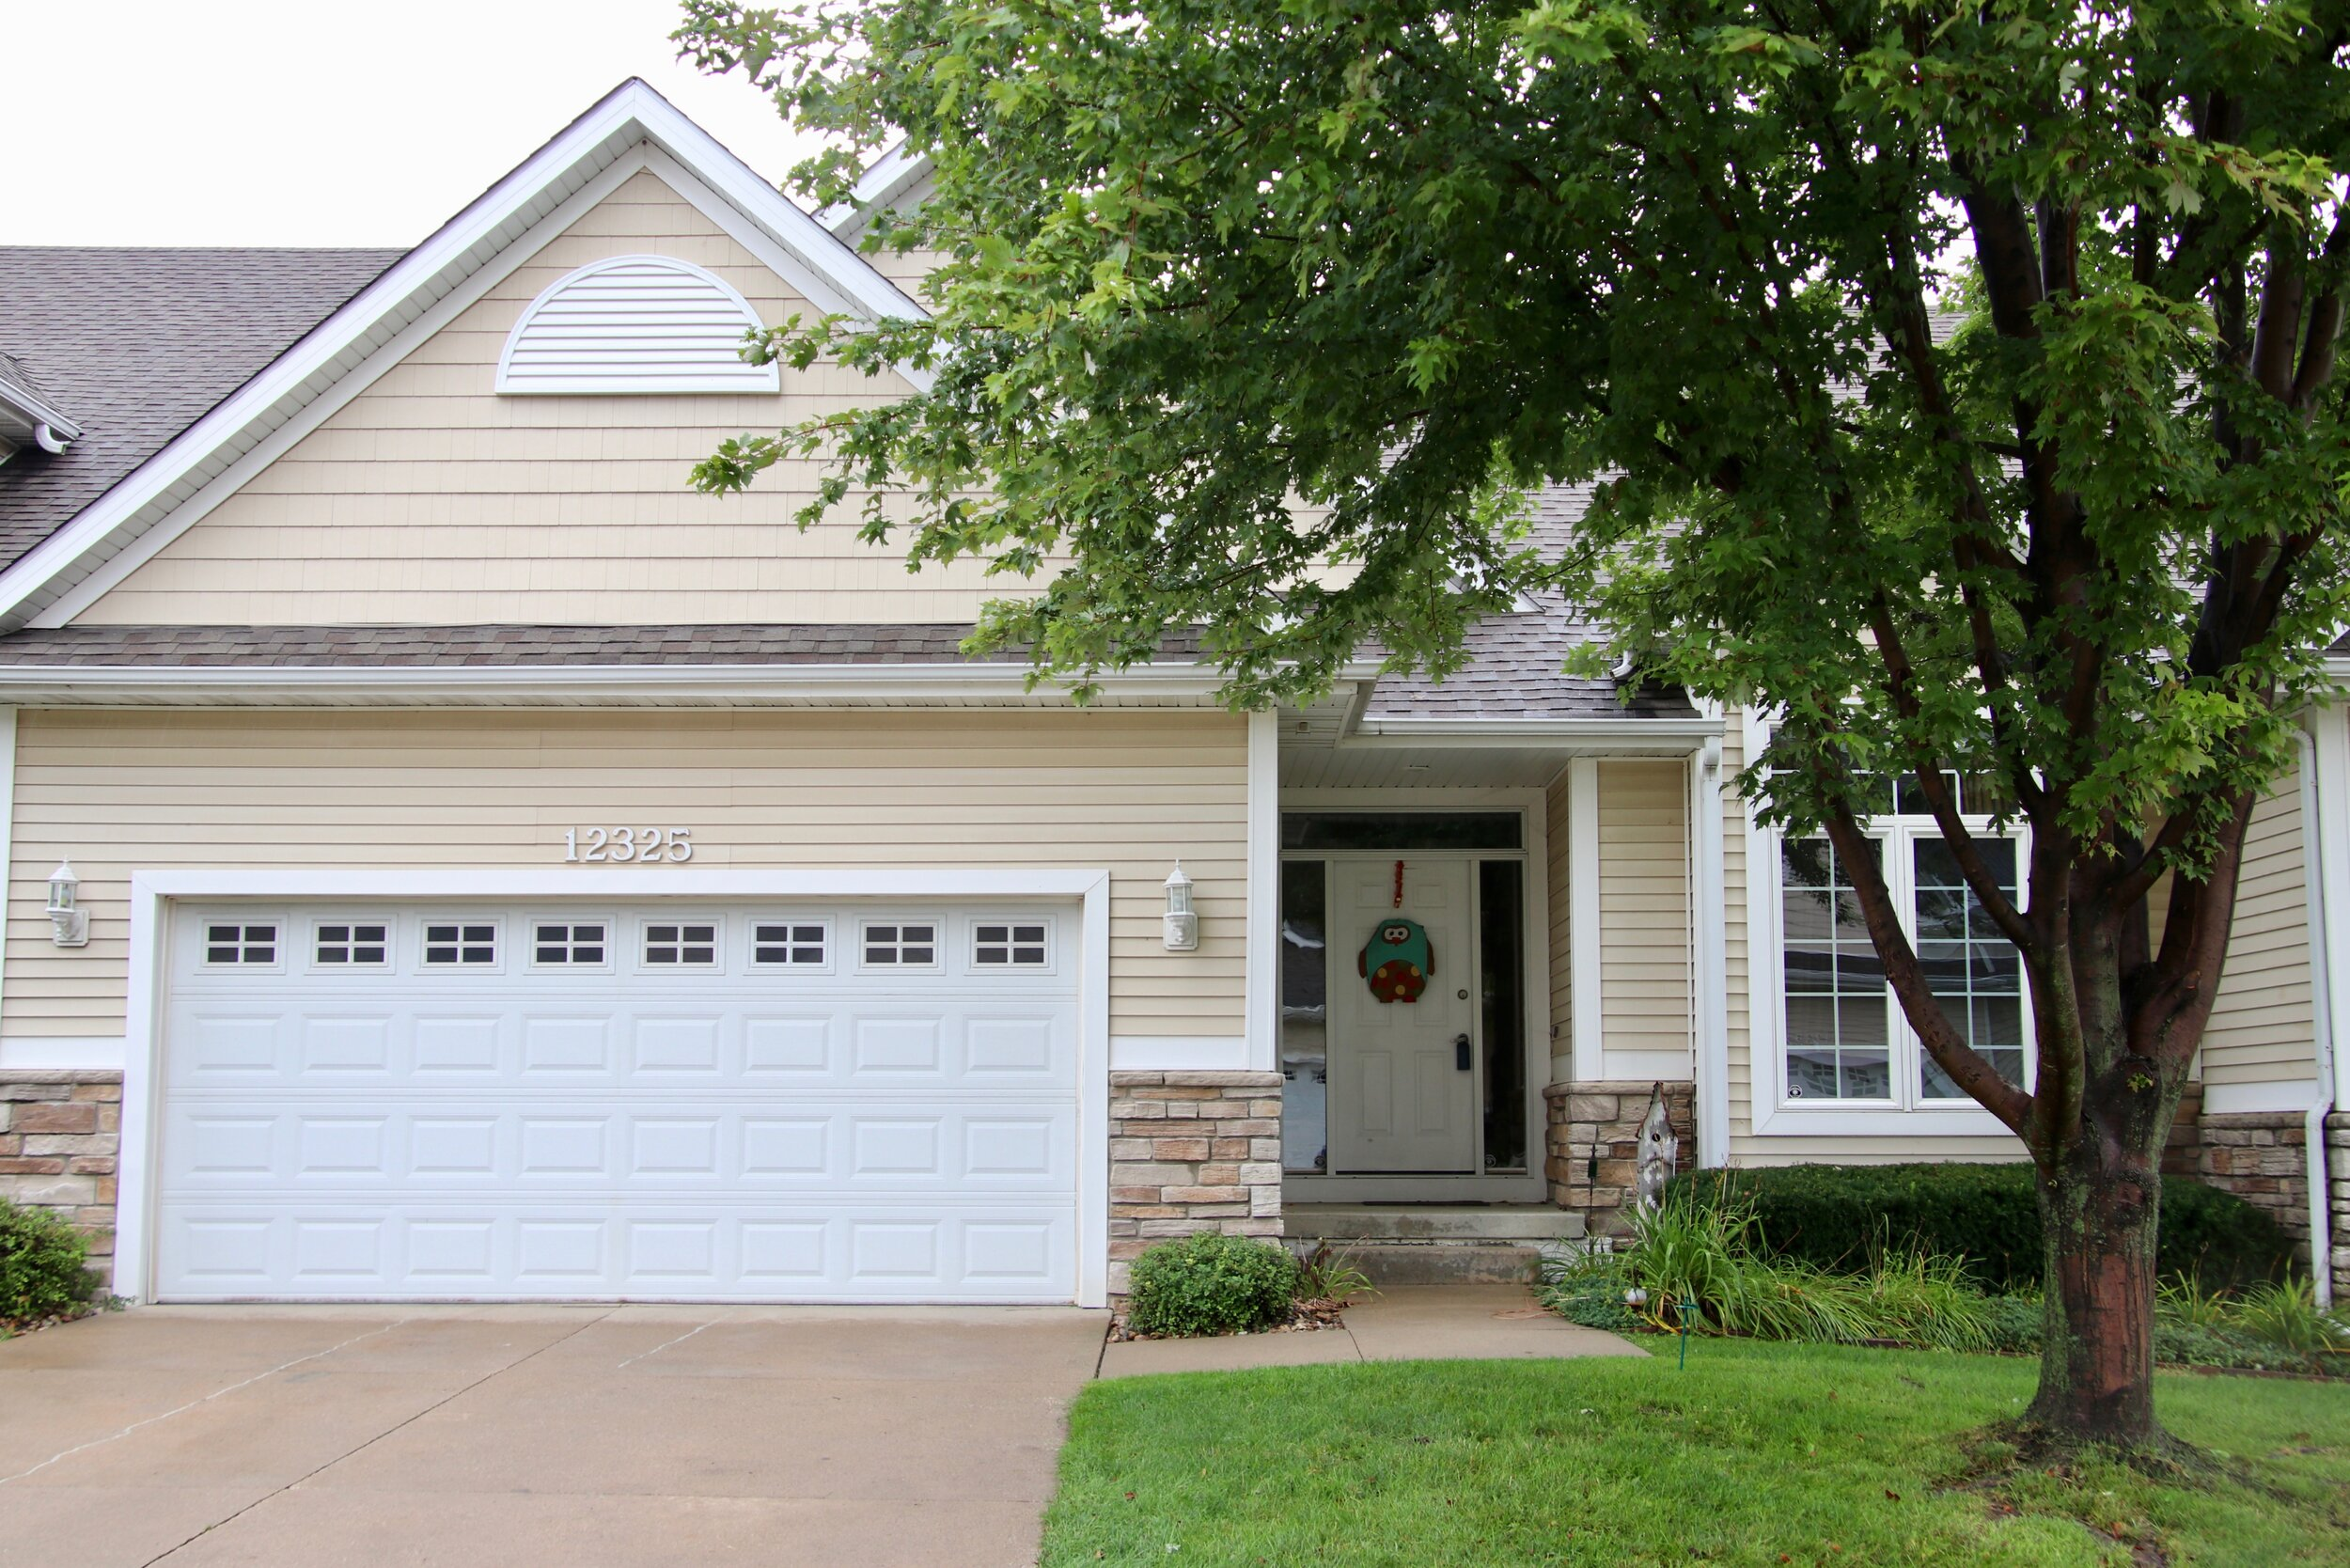 12325 Madison Ave Urbandale $269,900 3+3 - WELCOME TO TIMBERLINE CROSSING! This executive style townhome boasts over 2,400 sq. ft. of finished living space with 3 bedrooms, 3 baths, high vaulted ceiling, 2 car attached garage and beautiful finishes. The finished lower level features a large rec room, walk behind wet bar, 3rd bedroom, 3rd bathroom and plenty of storage space. With low monthly dues, you can experience maintenance free living at it's finest! All appliances included!